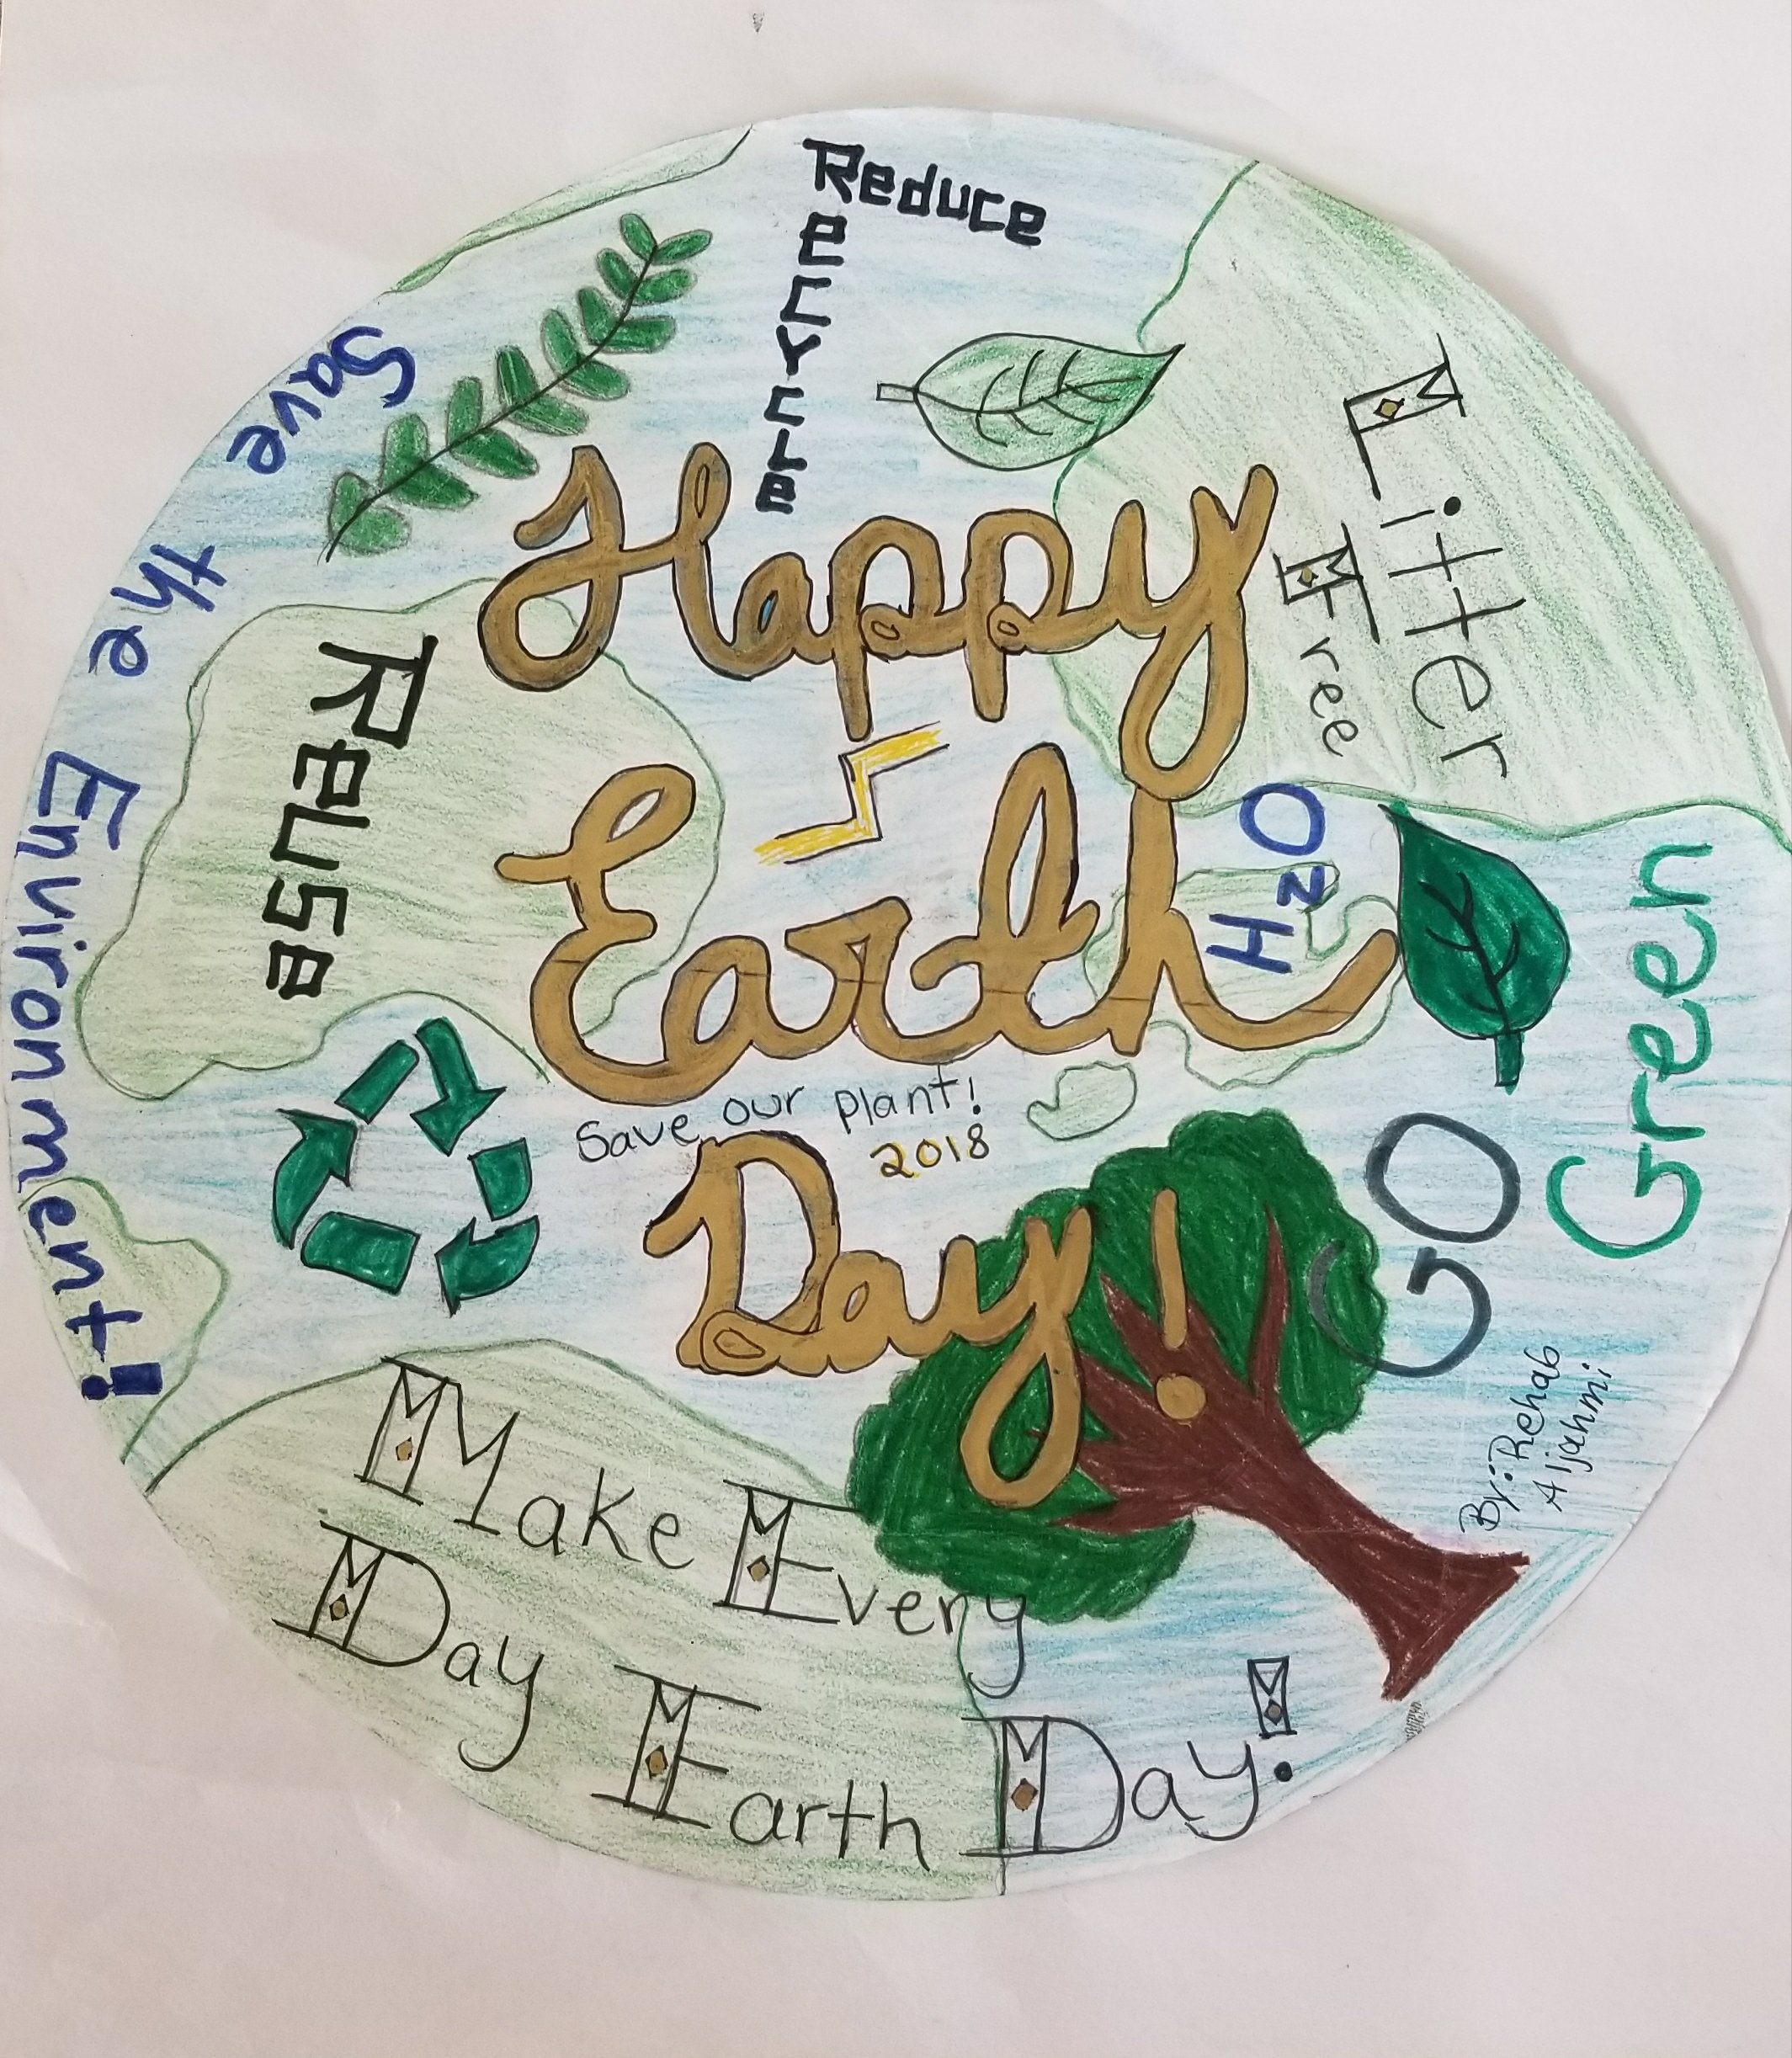 Poster That Depicts The Earth Covered In Text And Various Pictures Including A Recycling Sign